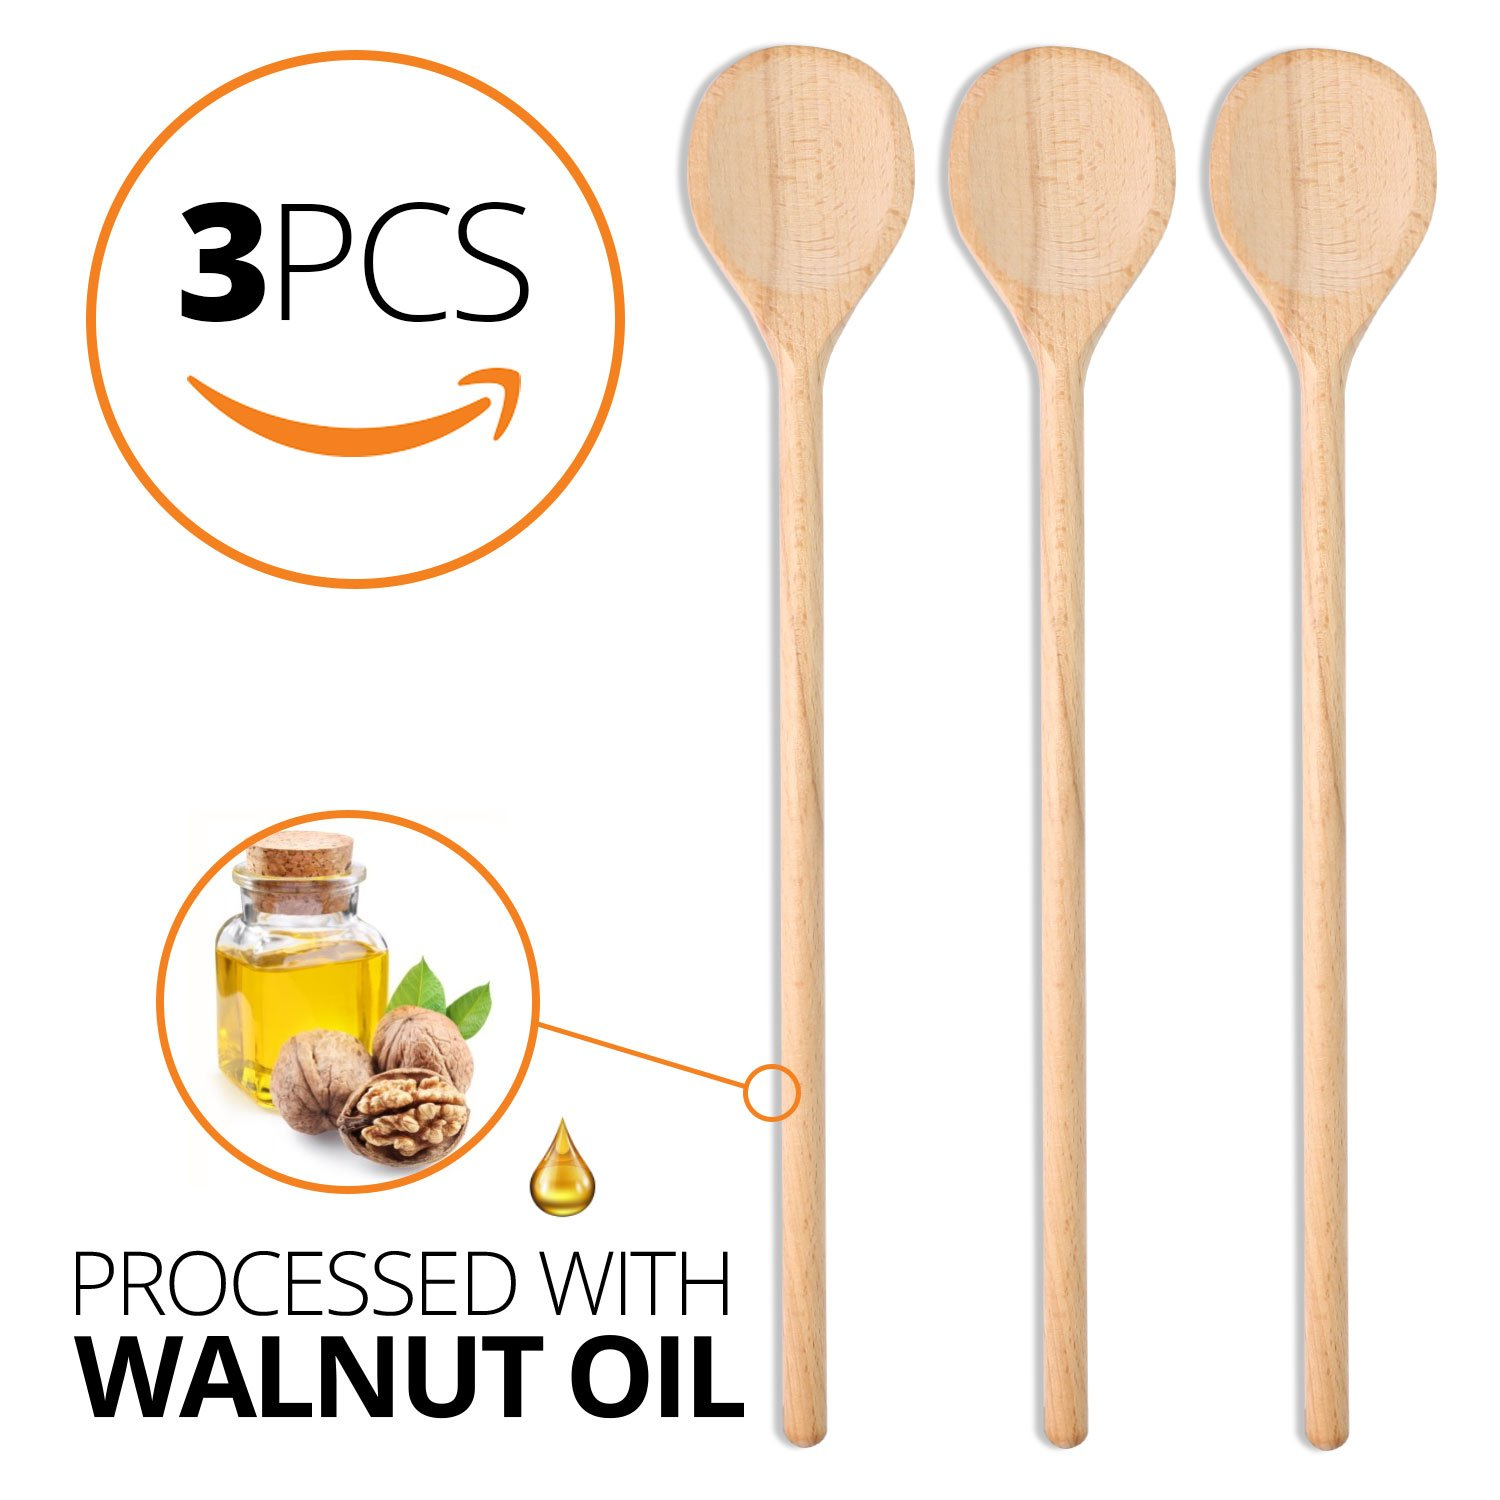 Wooden Spoons for Cooking - 3 pcs set, 15.7-Inch - Big Wooden Spoon Large for Mixing Baking Serving Wooden Utensils - Long Handle Wooden Spoon